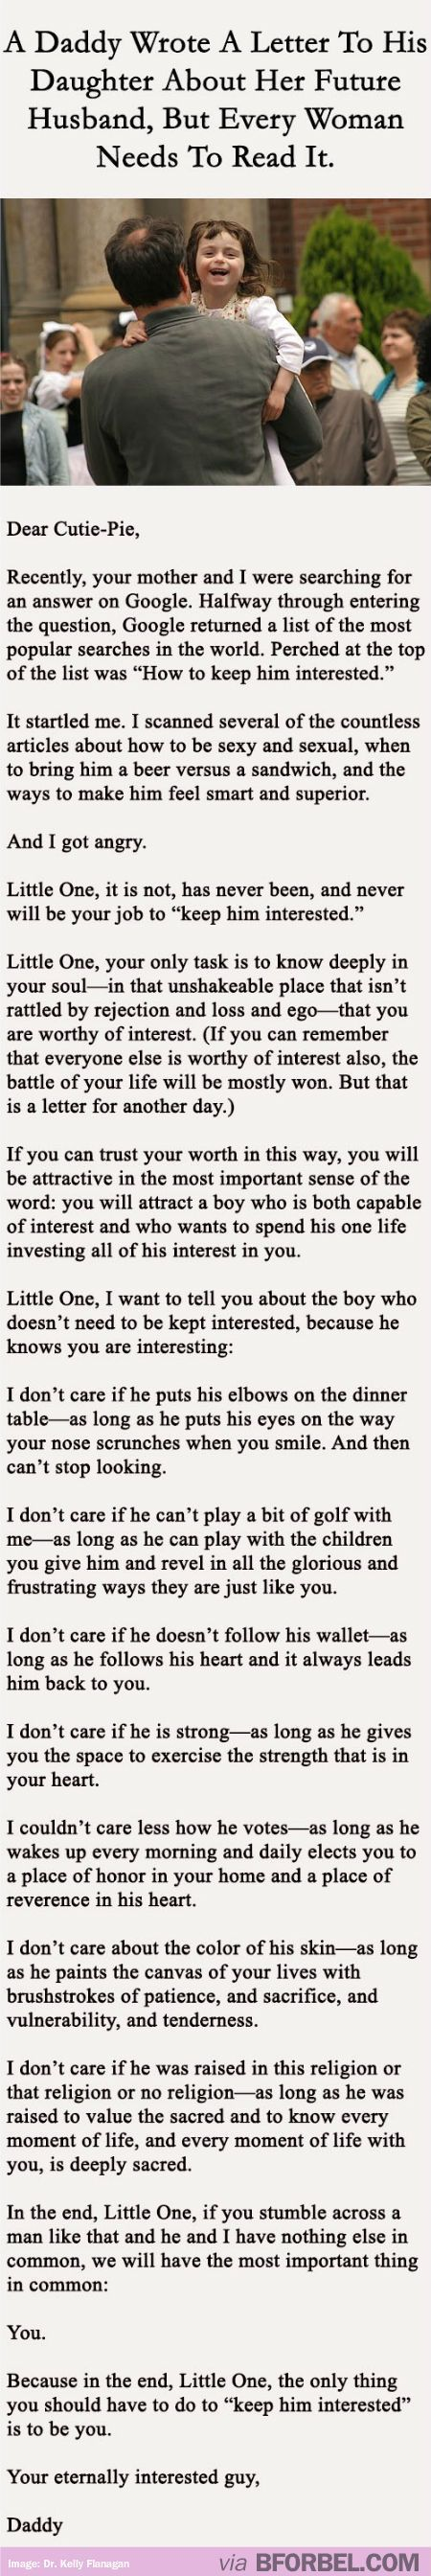 Everyone woman needs to read this ♡ The Father Who Wrote A